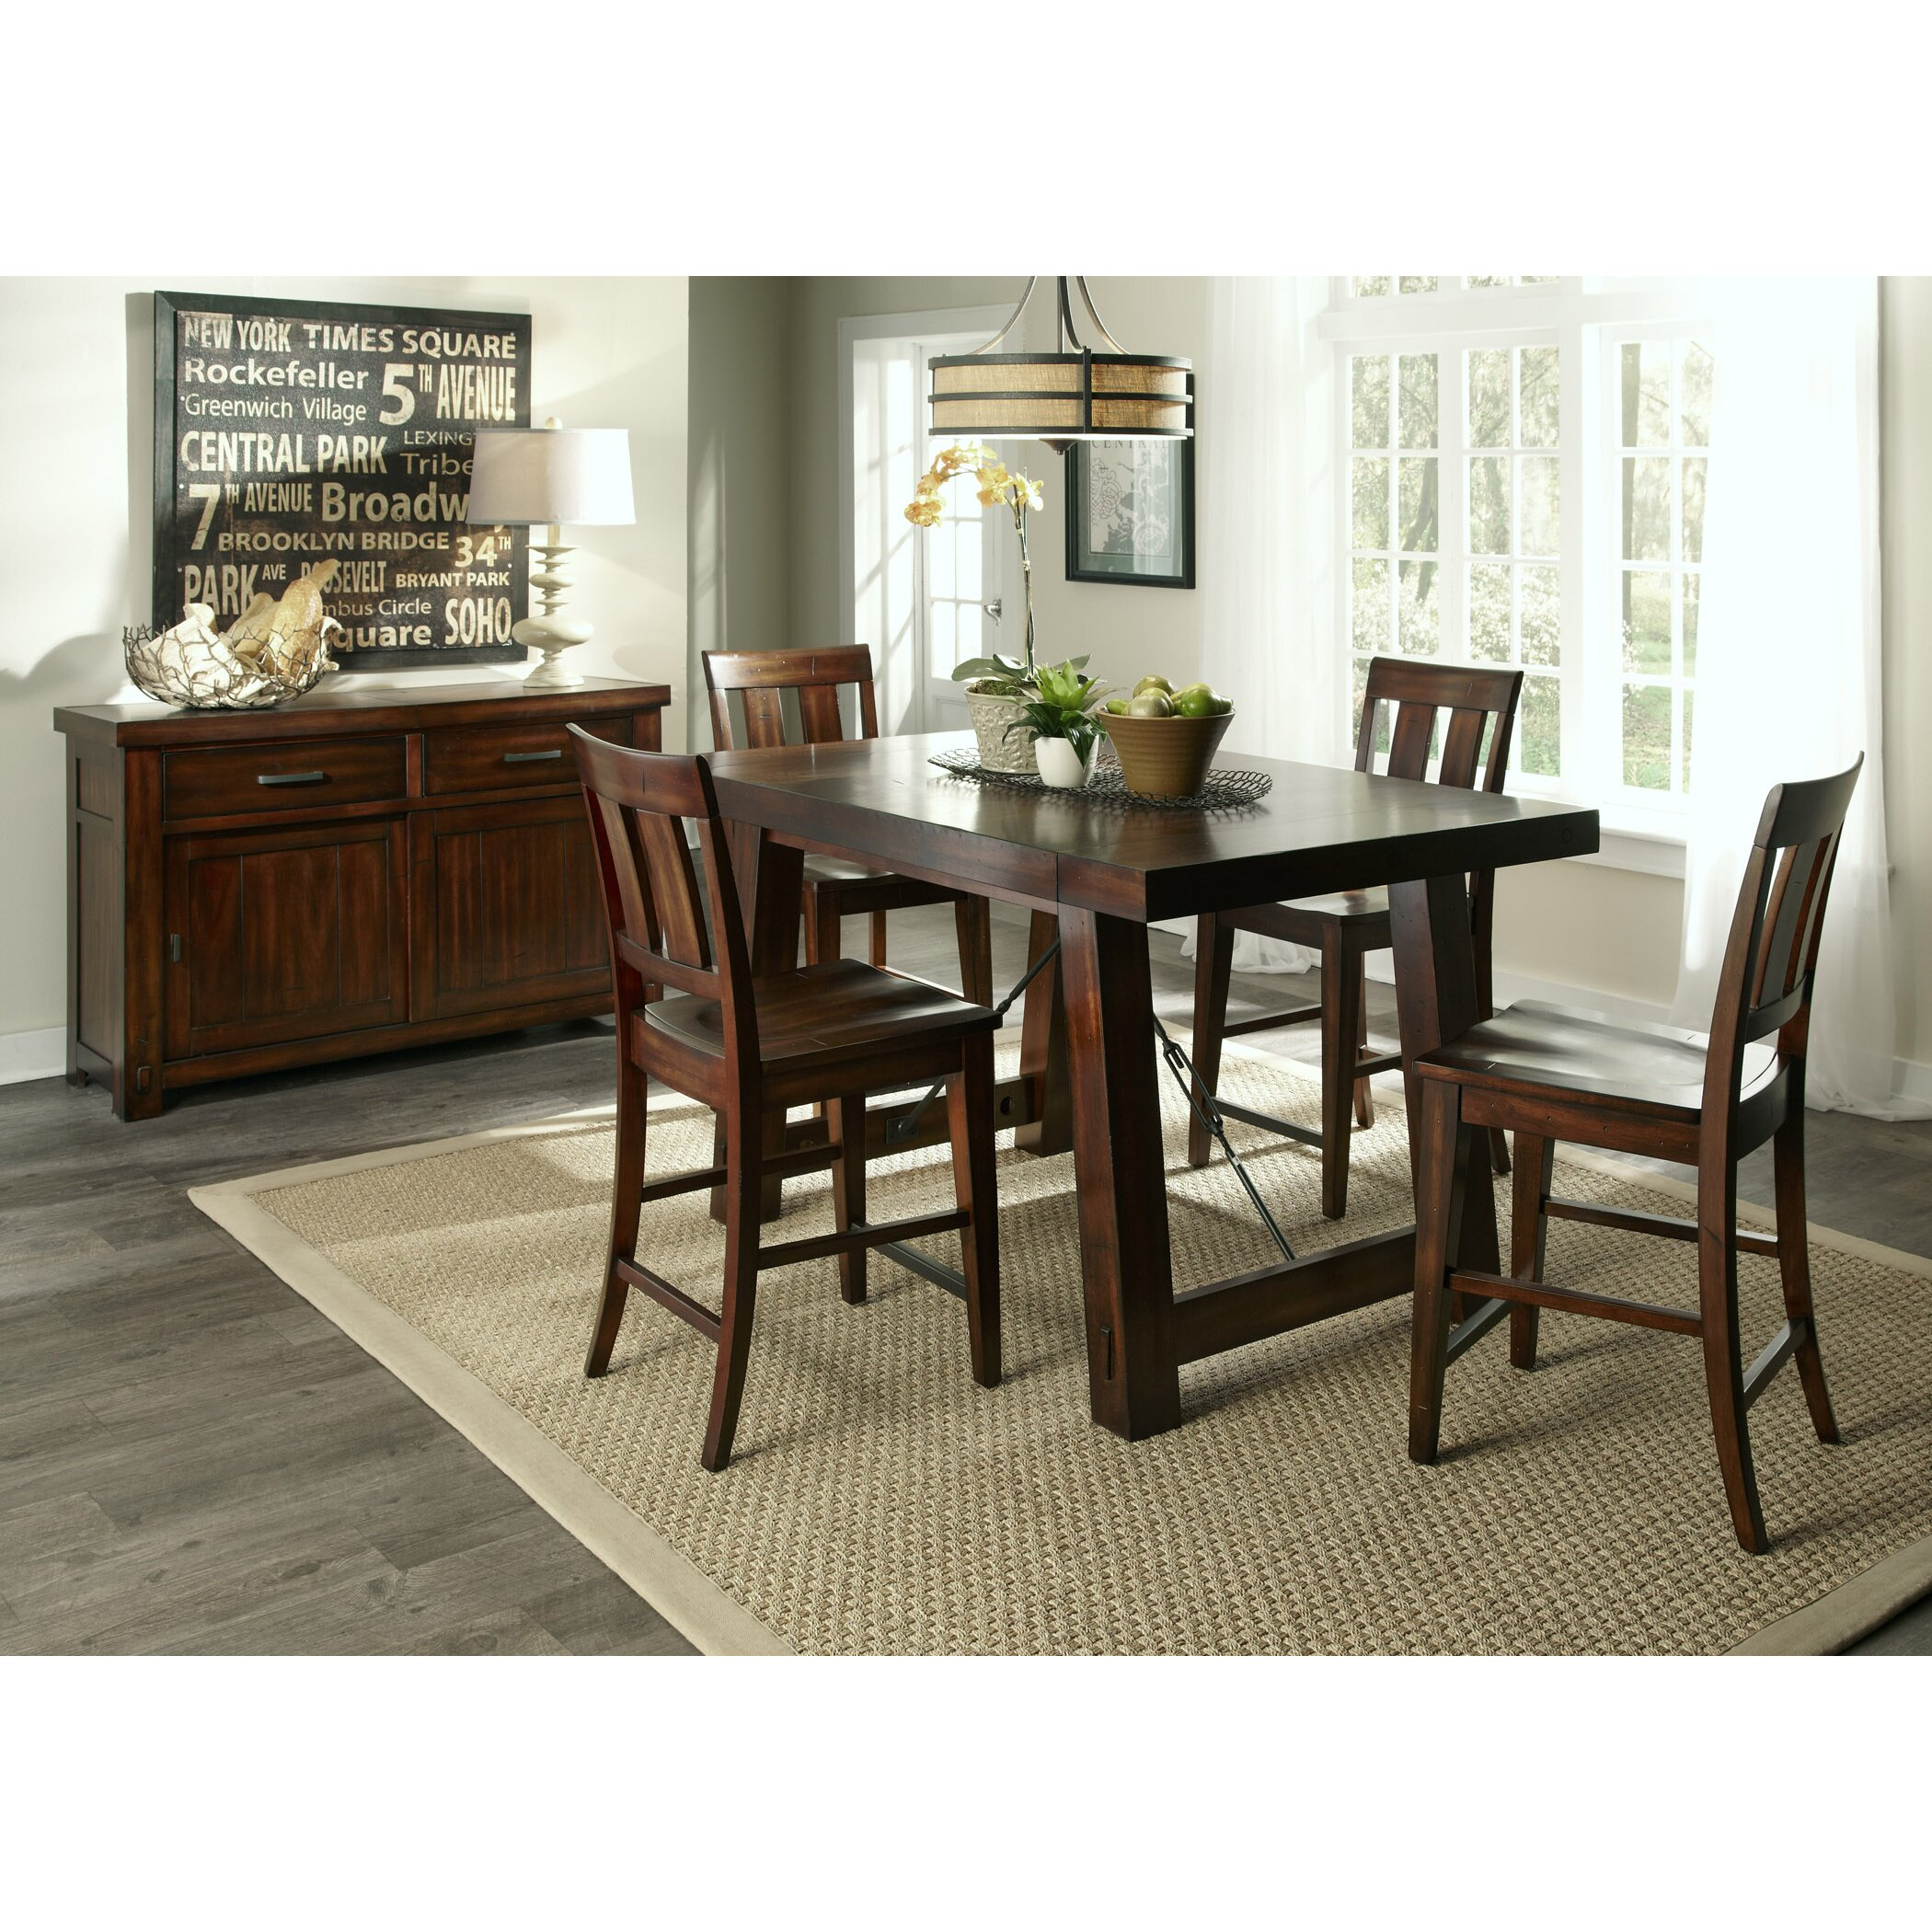 Loon Peak Haloke Counter Height Extendable Dining Table  : Loon Peak Haloke Counter Height Extendable Dining Table LOON4648 from www.wayfair.com size 2100 x 2100 jpeg 949kB